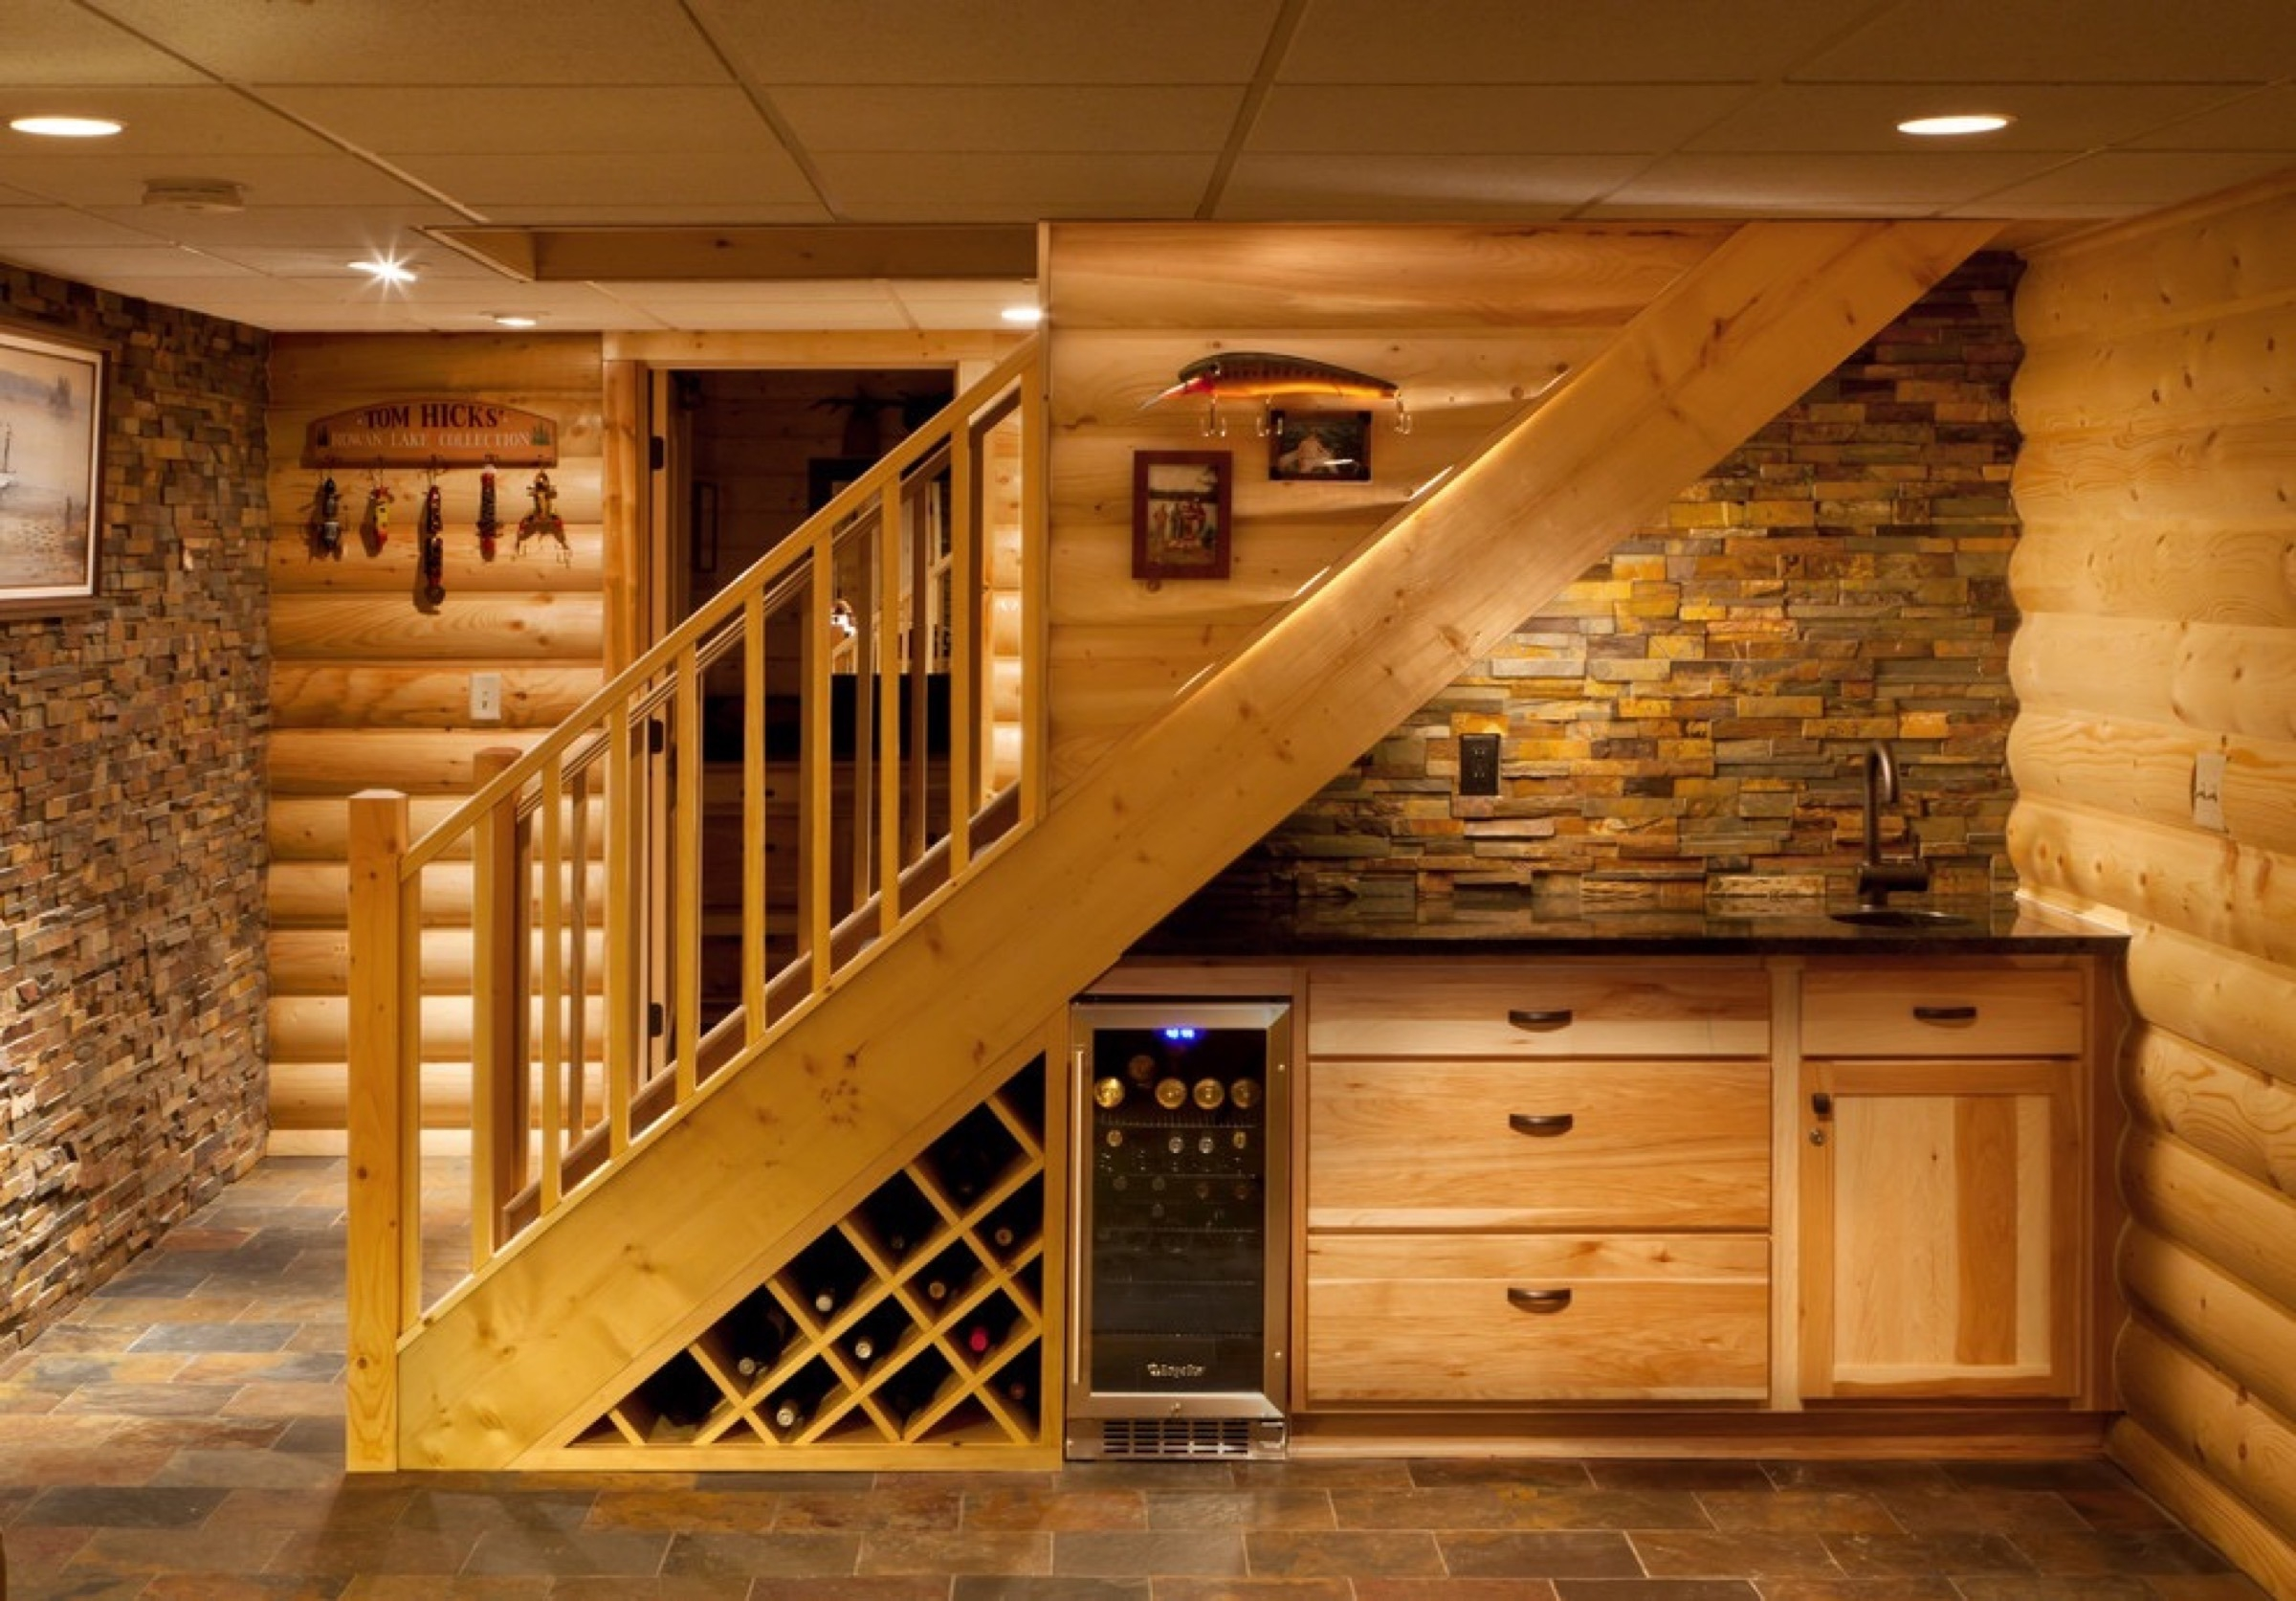 Basement Staircase Installation Costs Updated Prices In 2020 | Staircase Replacement Near Me | Deck | Handrail | Carpeted Stairs | Riser | Stair Runner